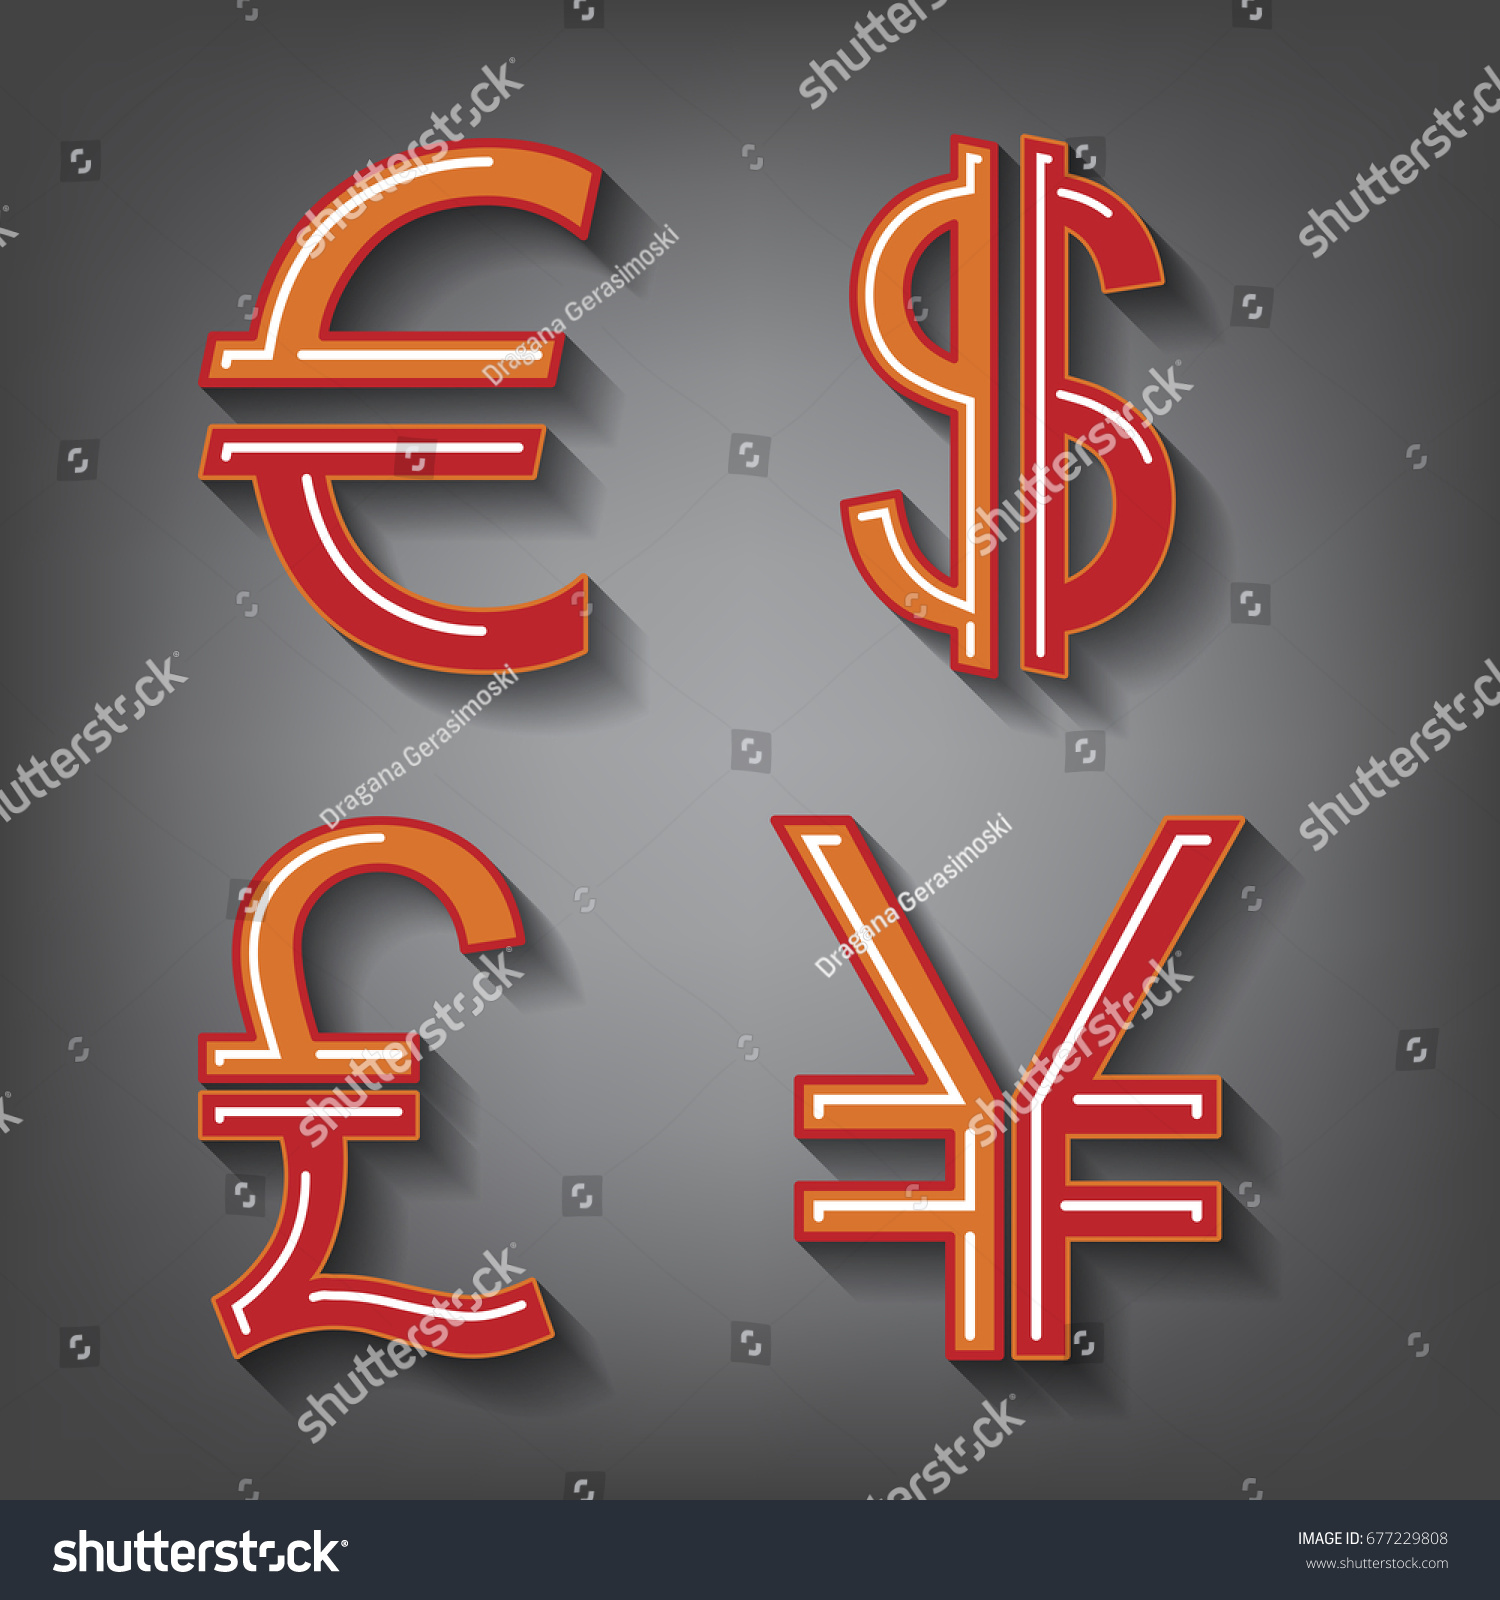 Dollar euro pound yen currency icons stock illustration 677229808 dollar euro pound and yen currency icons usd eur gbp and biocorpaavc Gallery